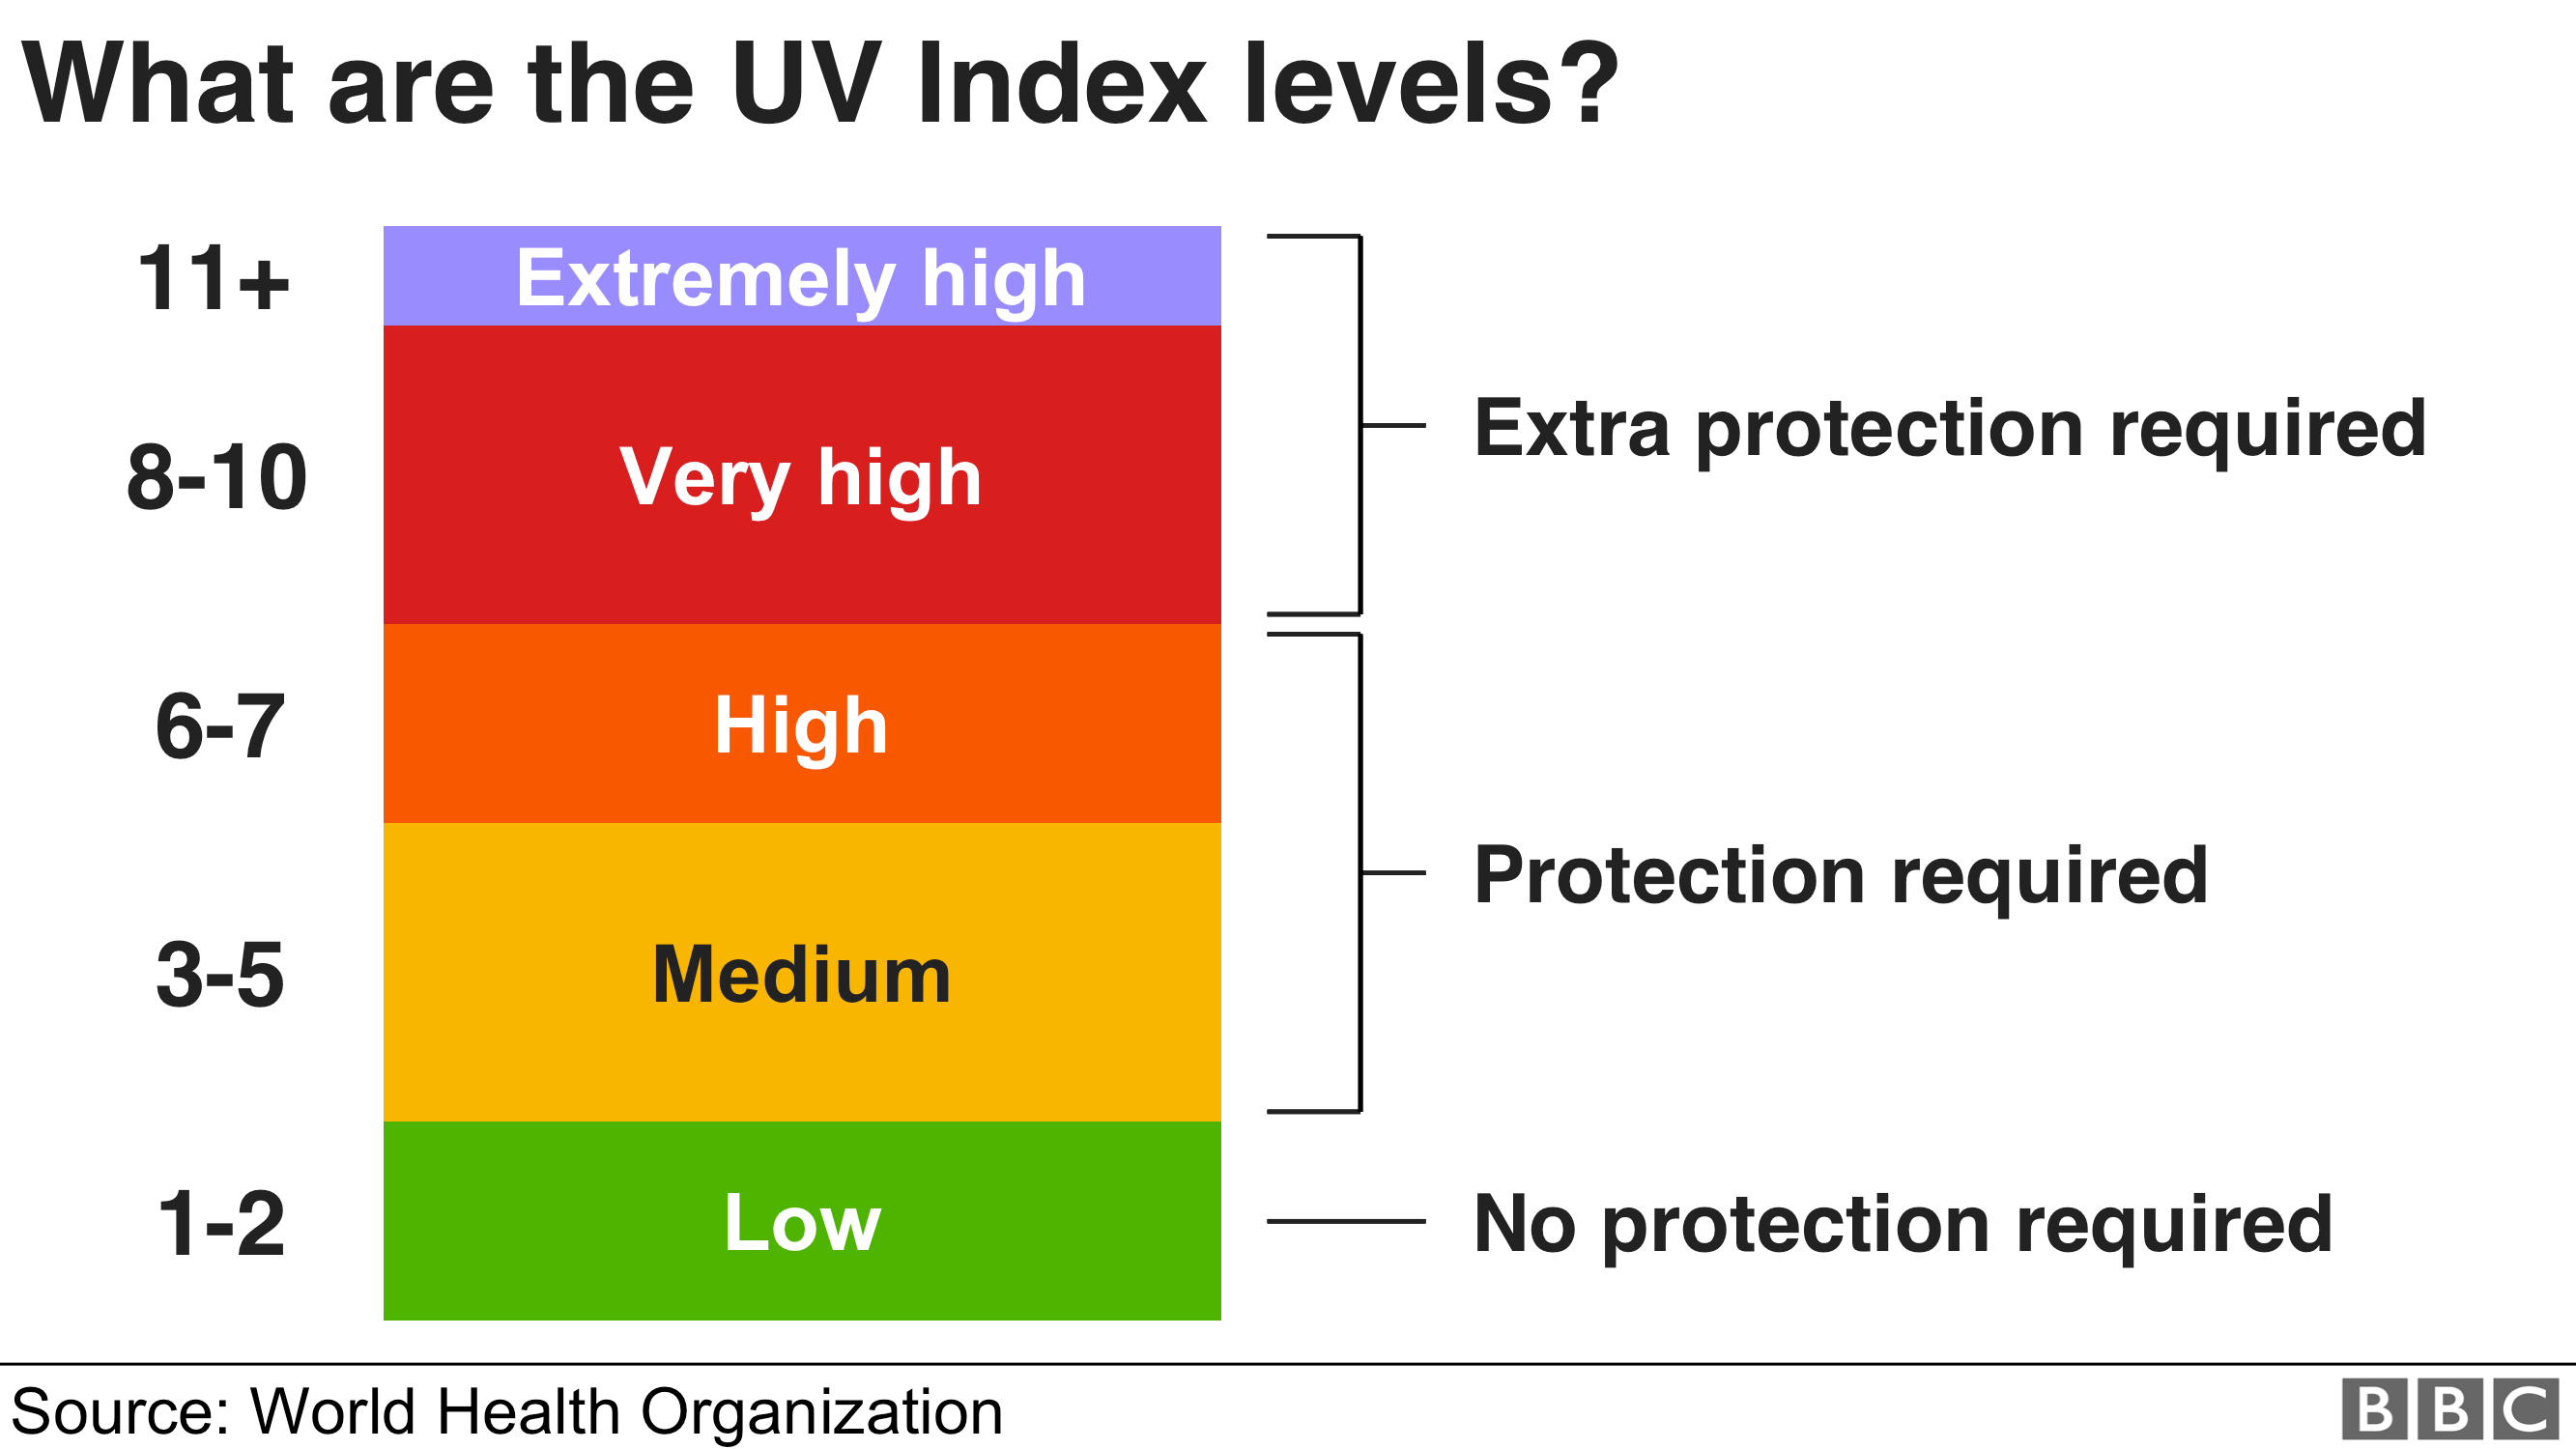 Graphic - UV Index levels: 1 to 2 = Low, 3 to 5 = Moderate, 6 to 7 = High, 8 to 10 = Very High, 10+ = Extremely High